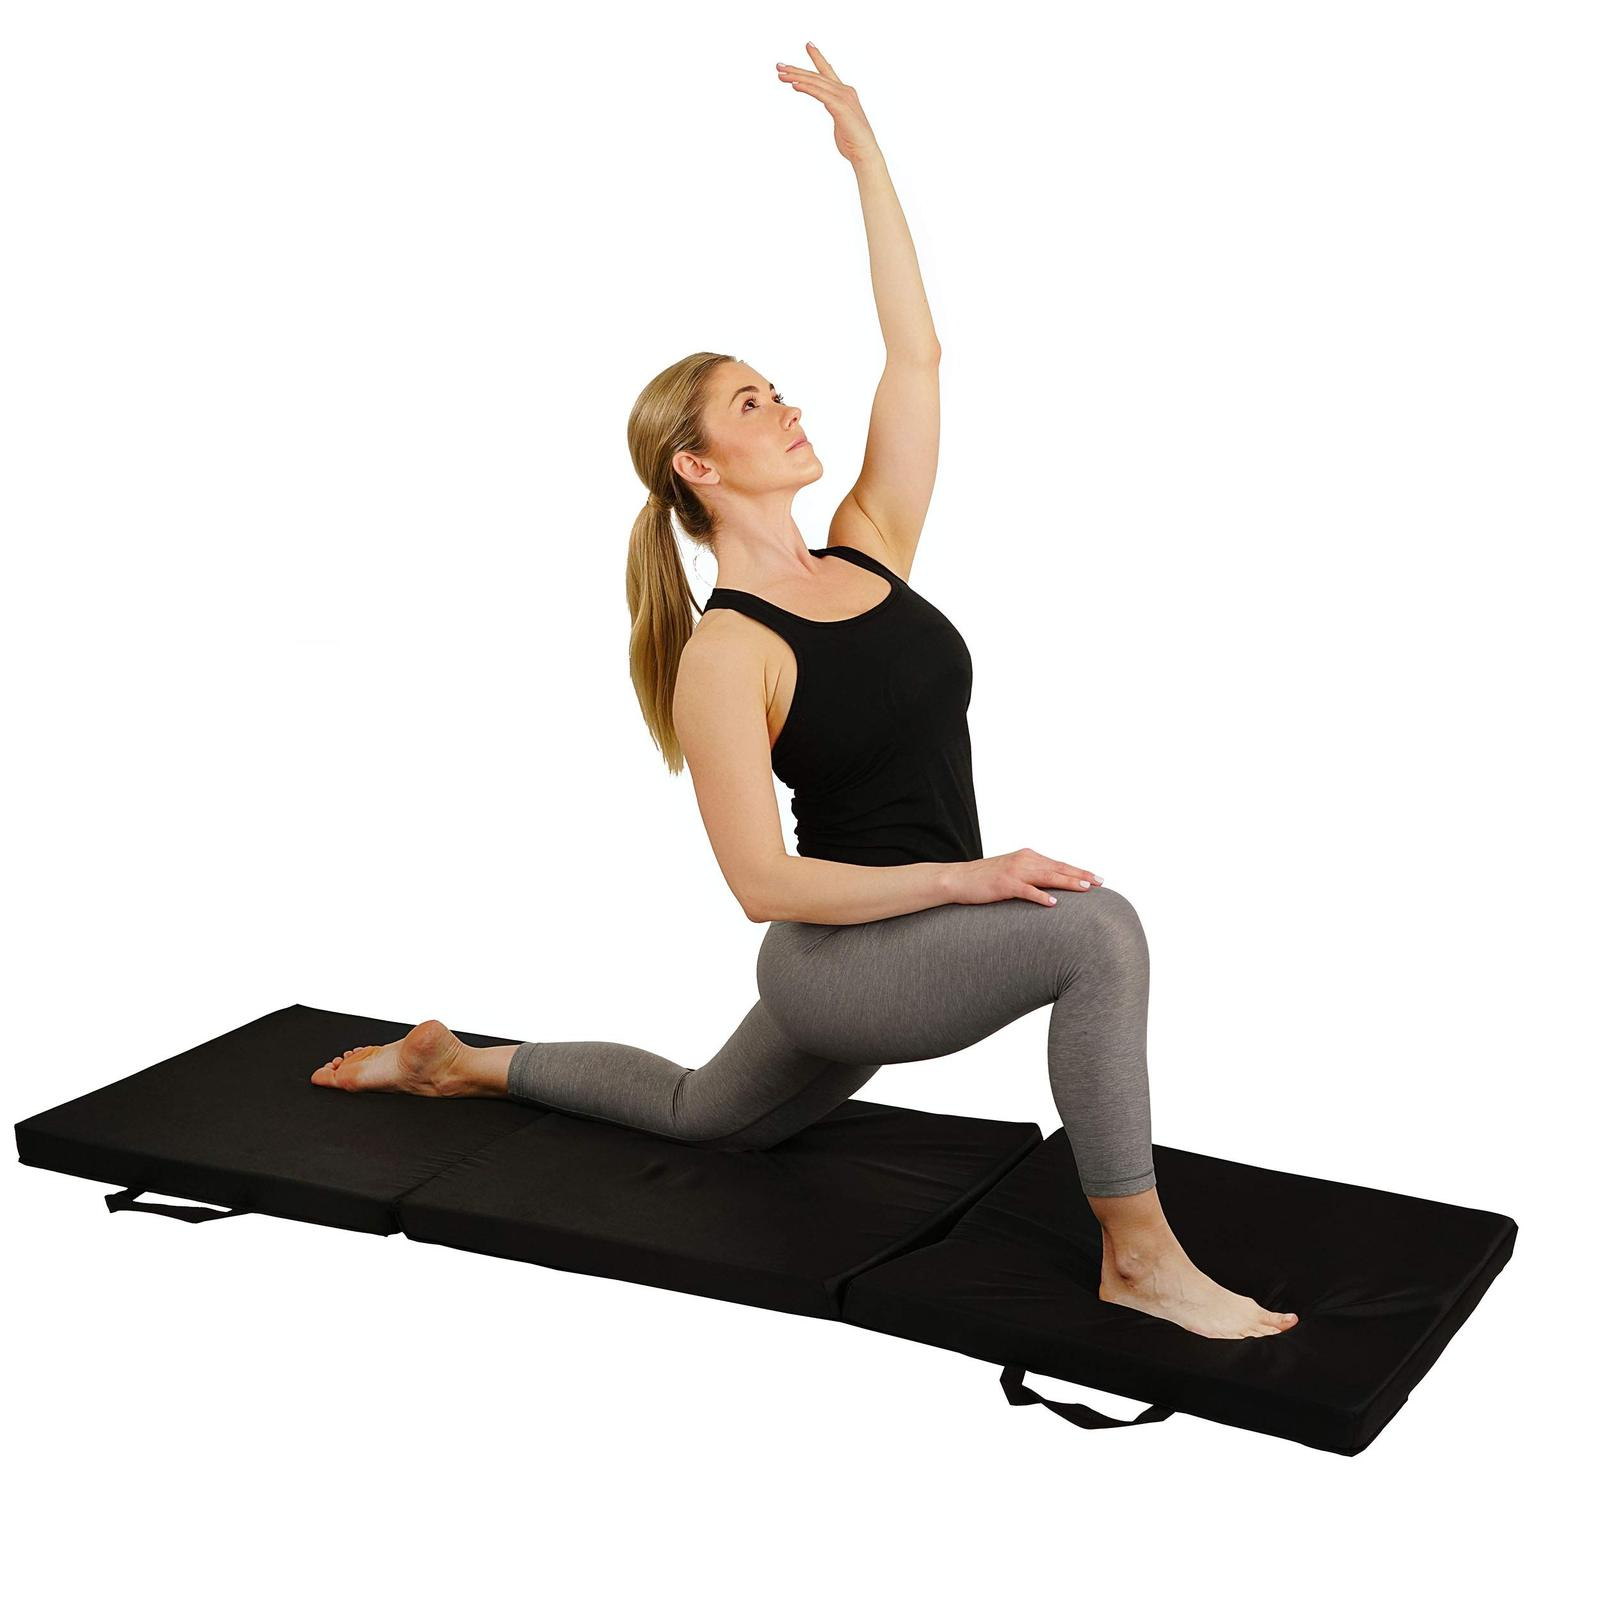 Sunny Health & Fitness Exercise Folding Mat for Yoga, Fitness, Aerobics,